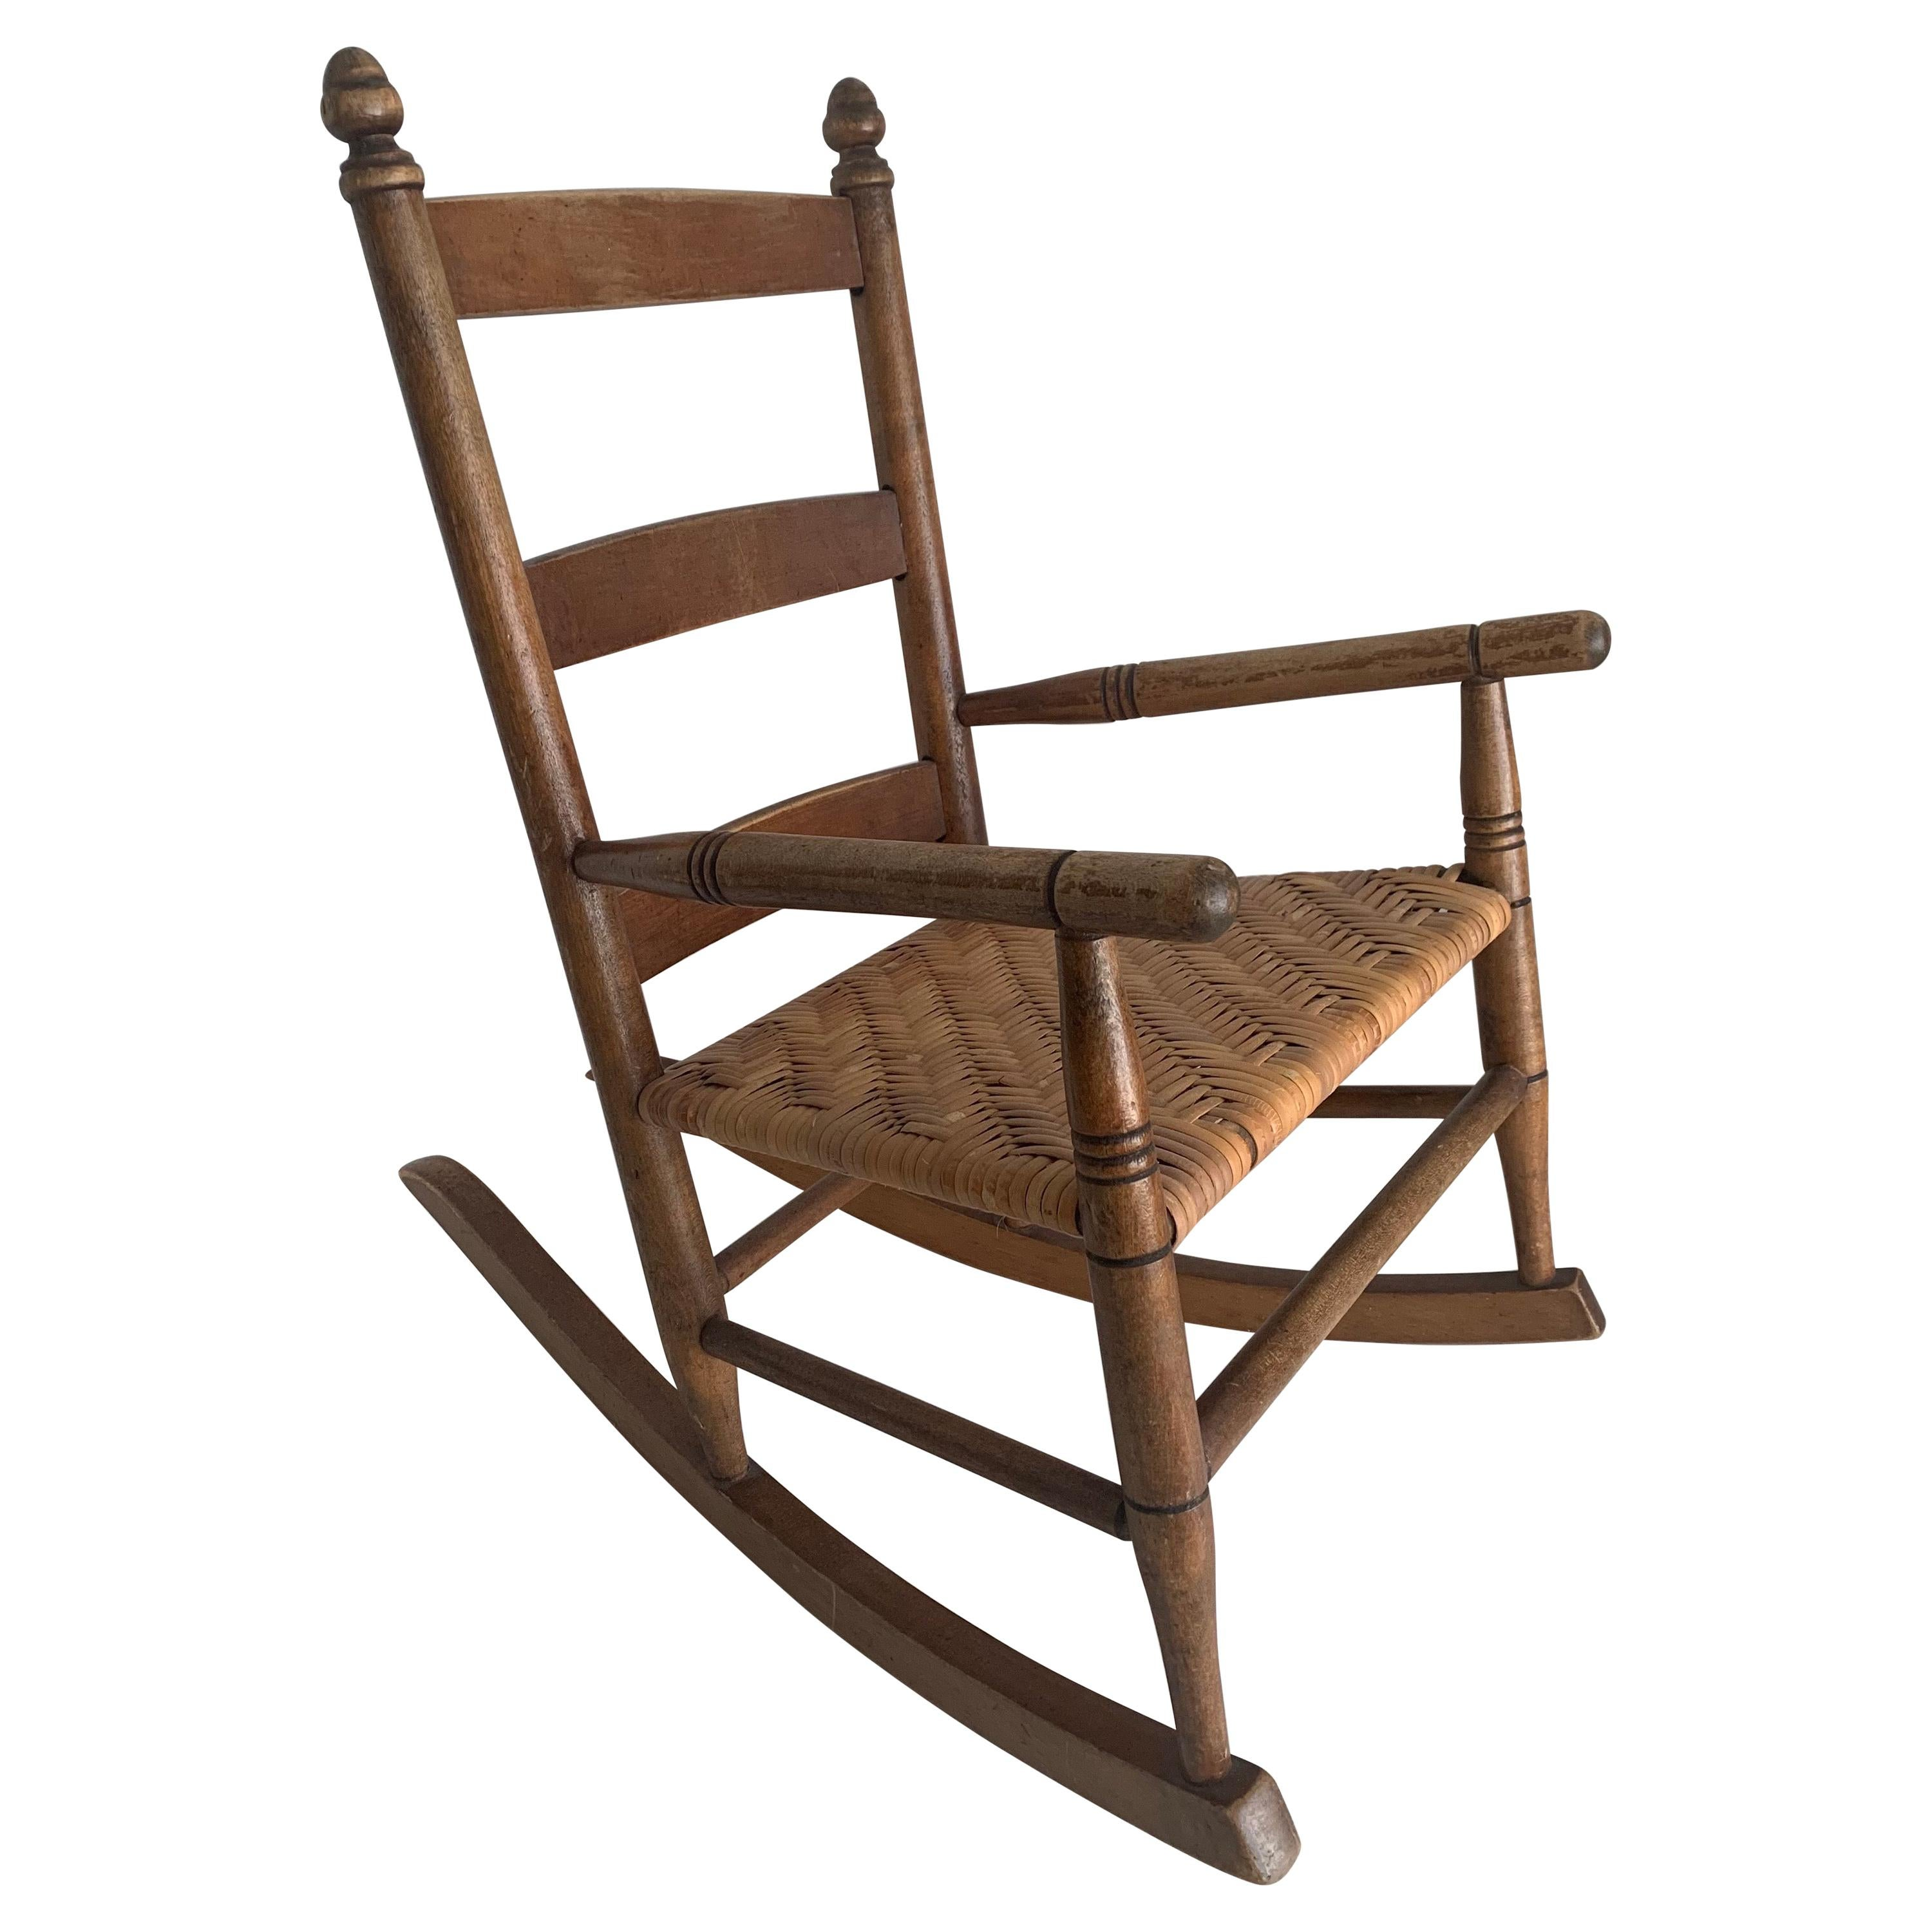 1950s Rustic Style Wooden Children's Rocking Chair